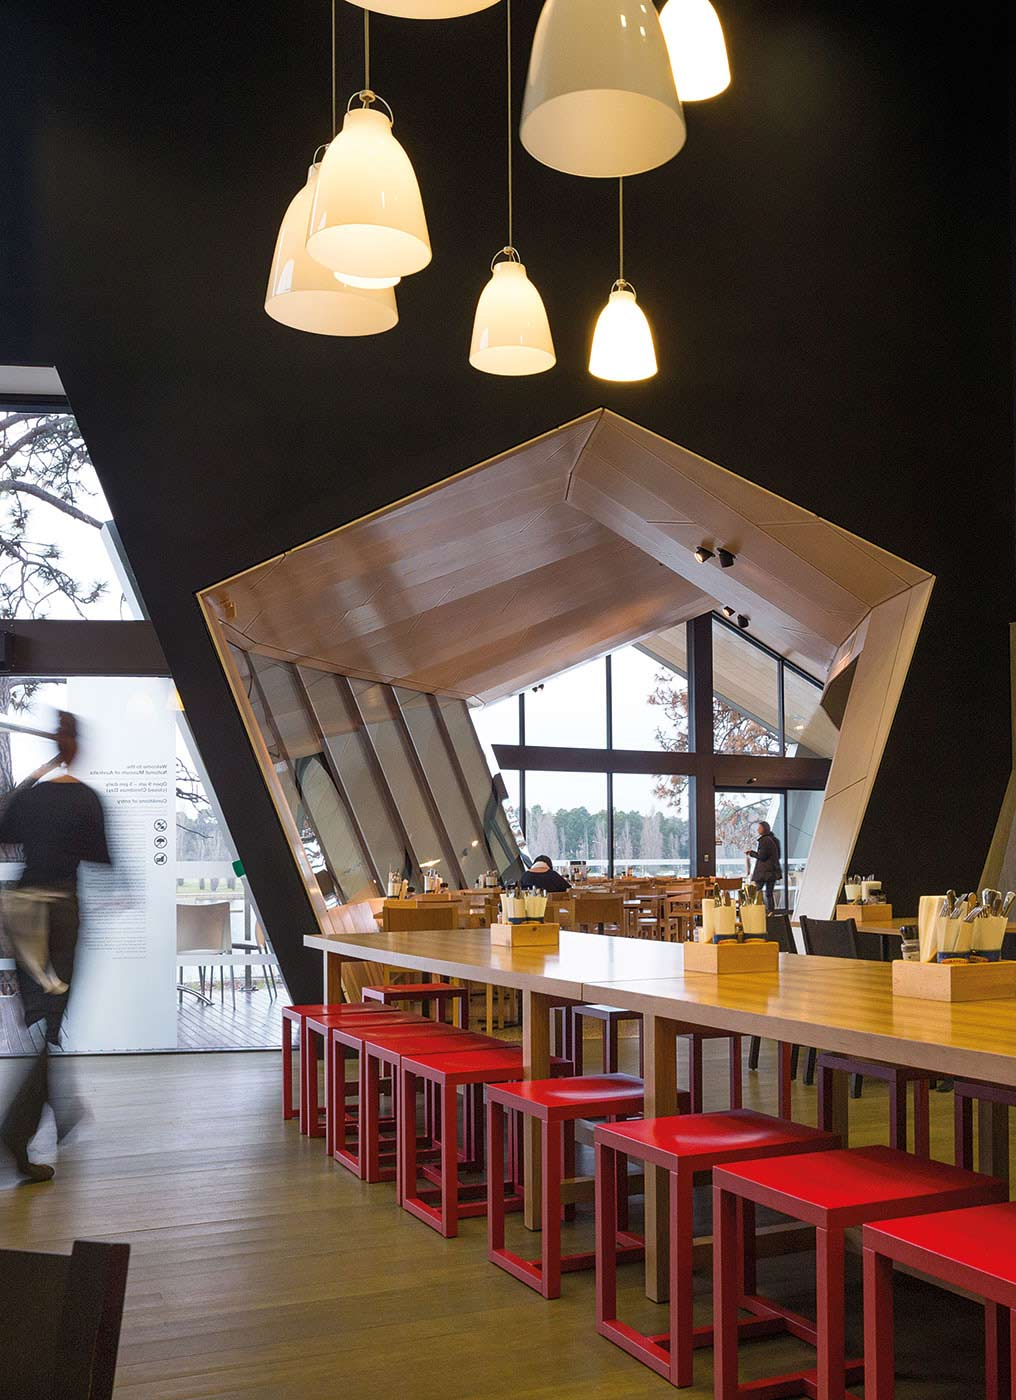 Part of the interior of the new Museum Cafe.